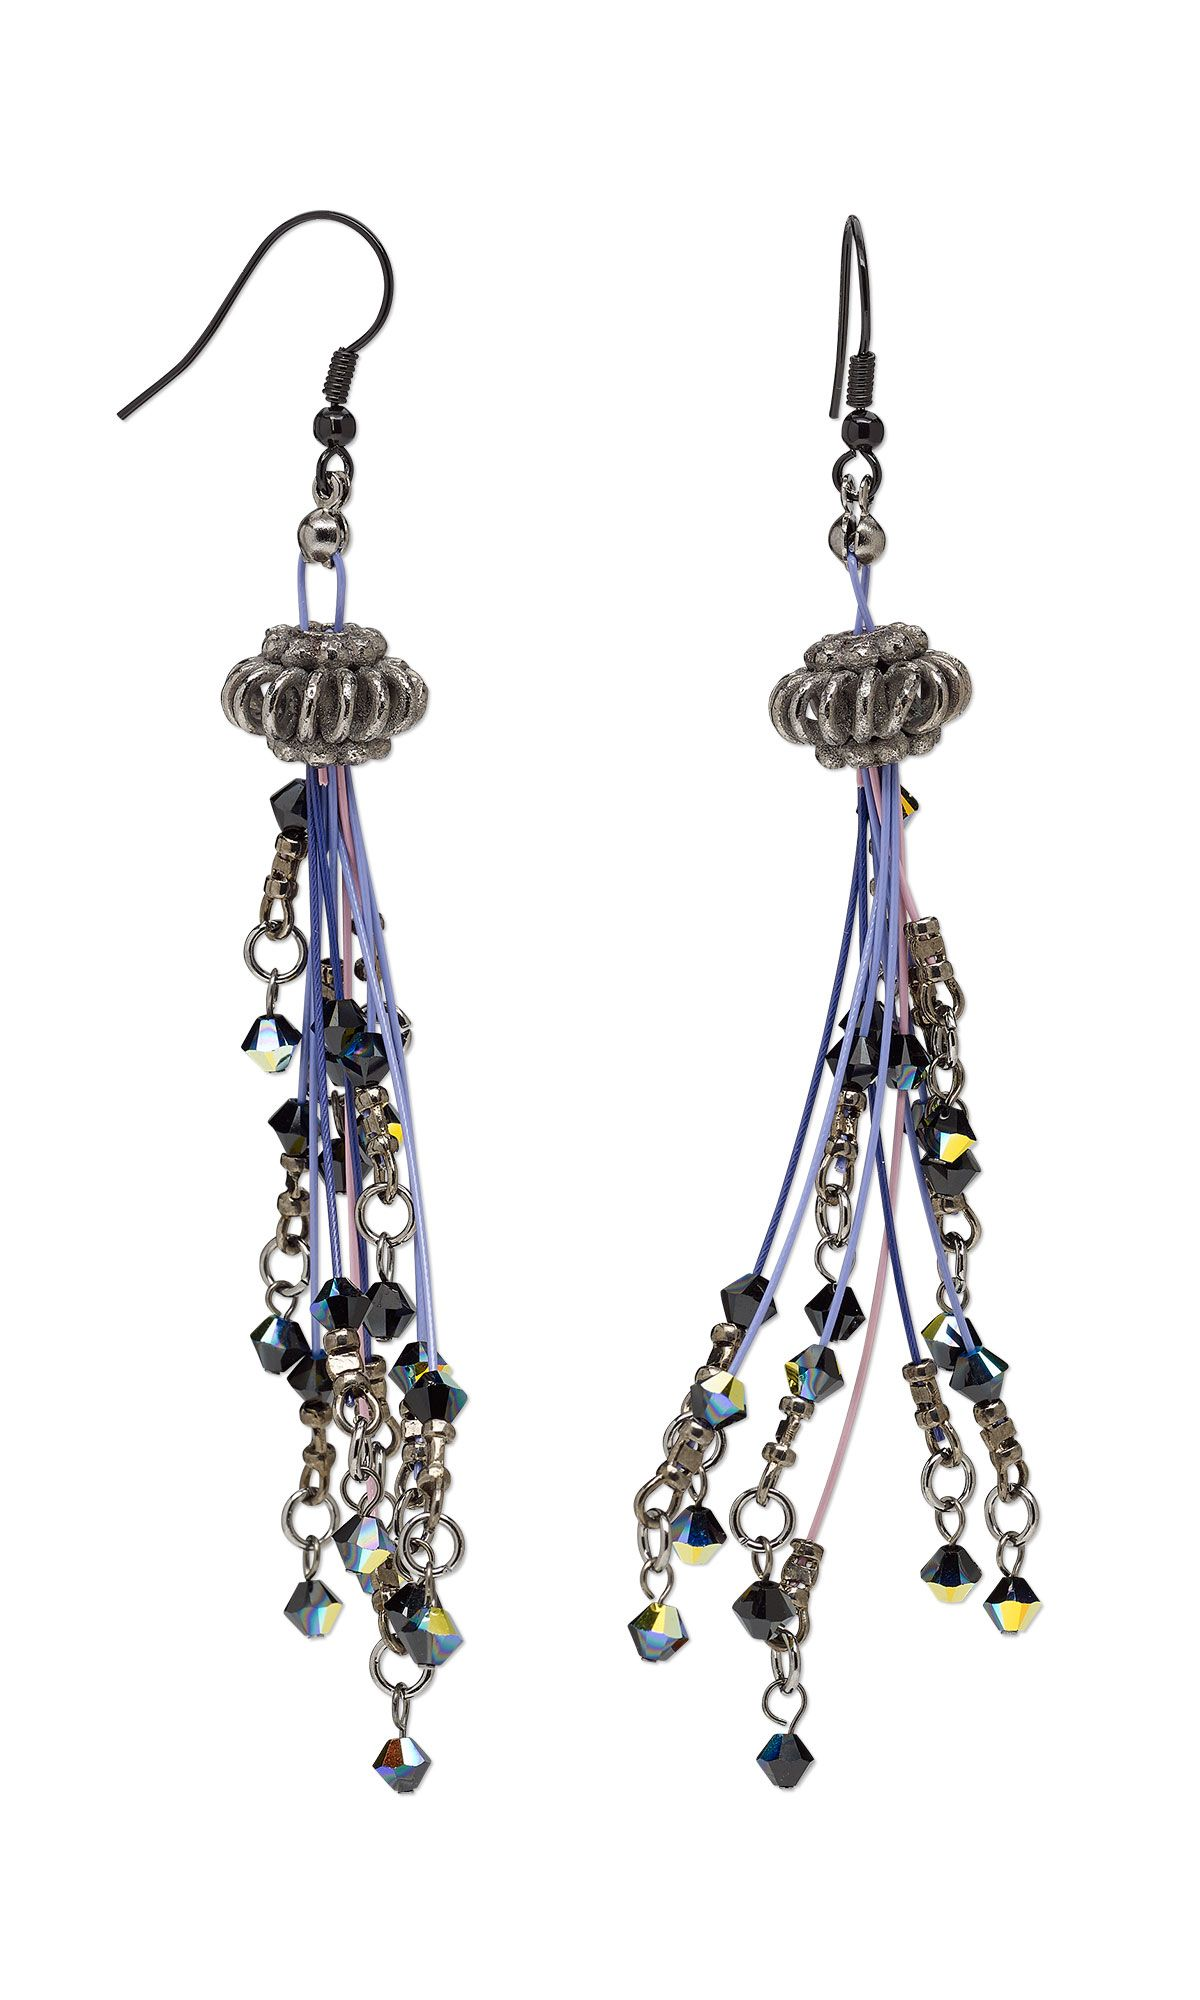 Jewelry Design - Earrings with Gunmetal-Plated Copper Beads ...